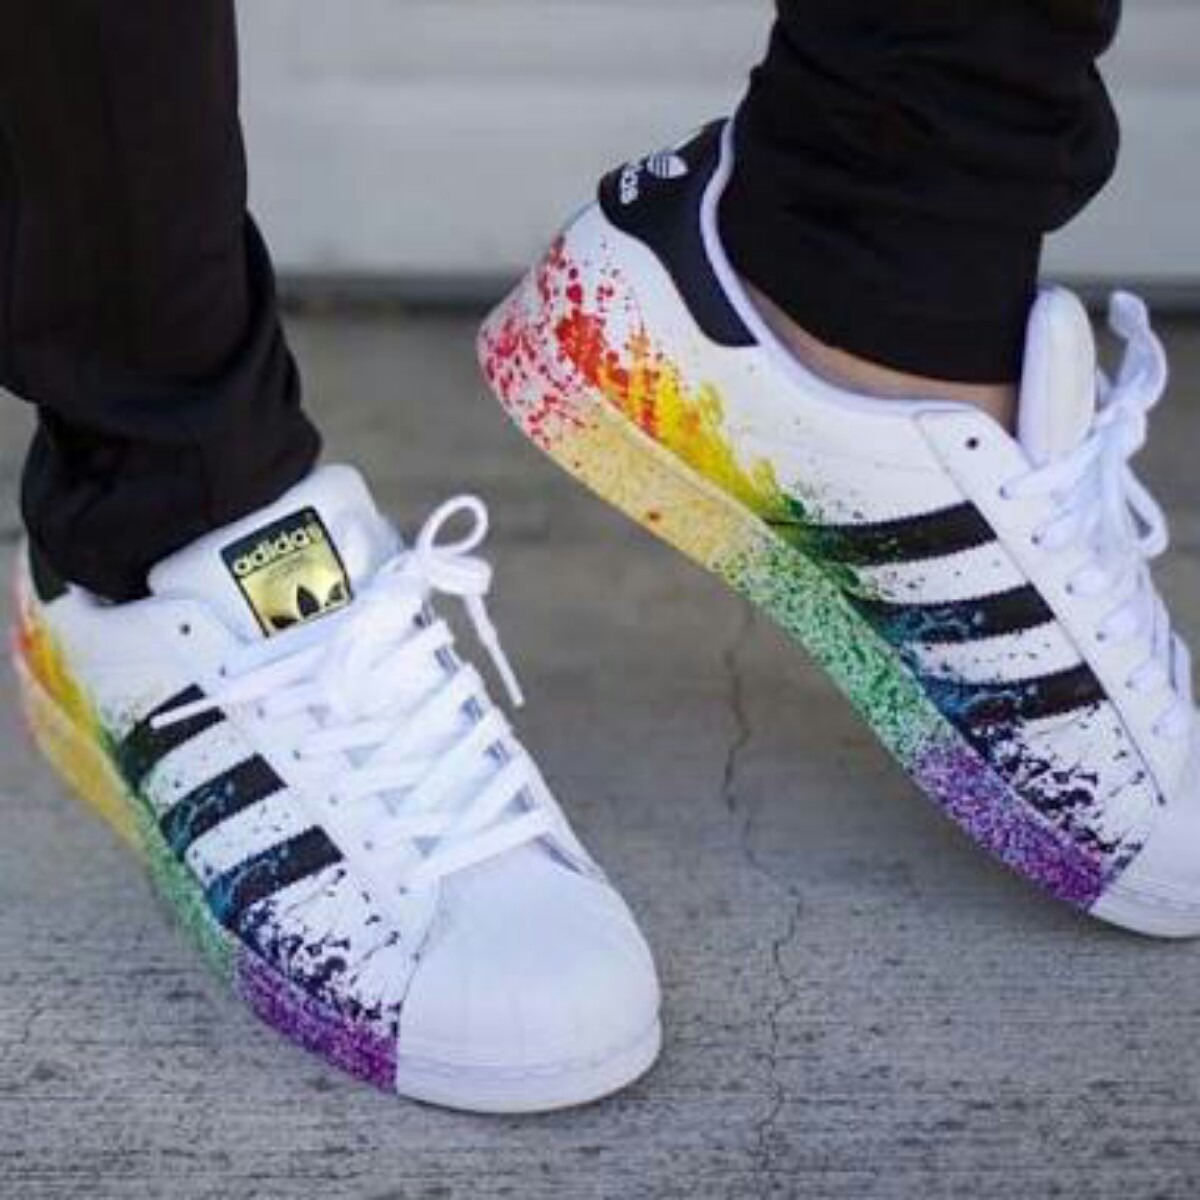 Comprar Adidas Superstar Originales